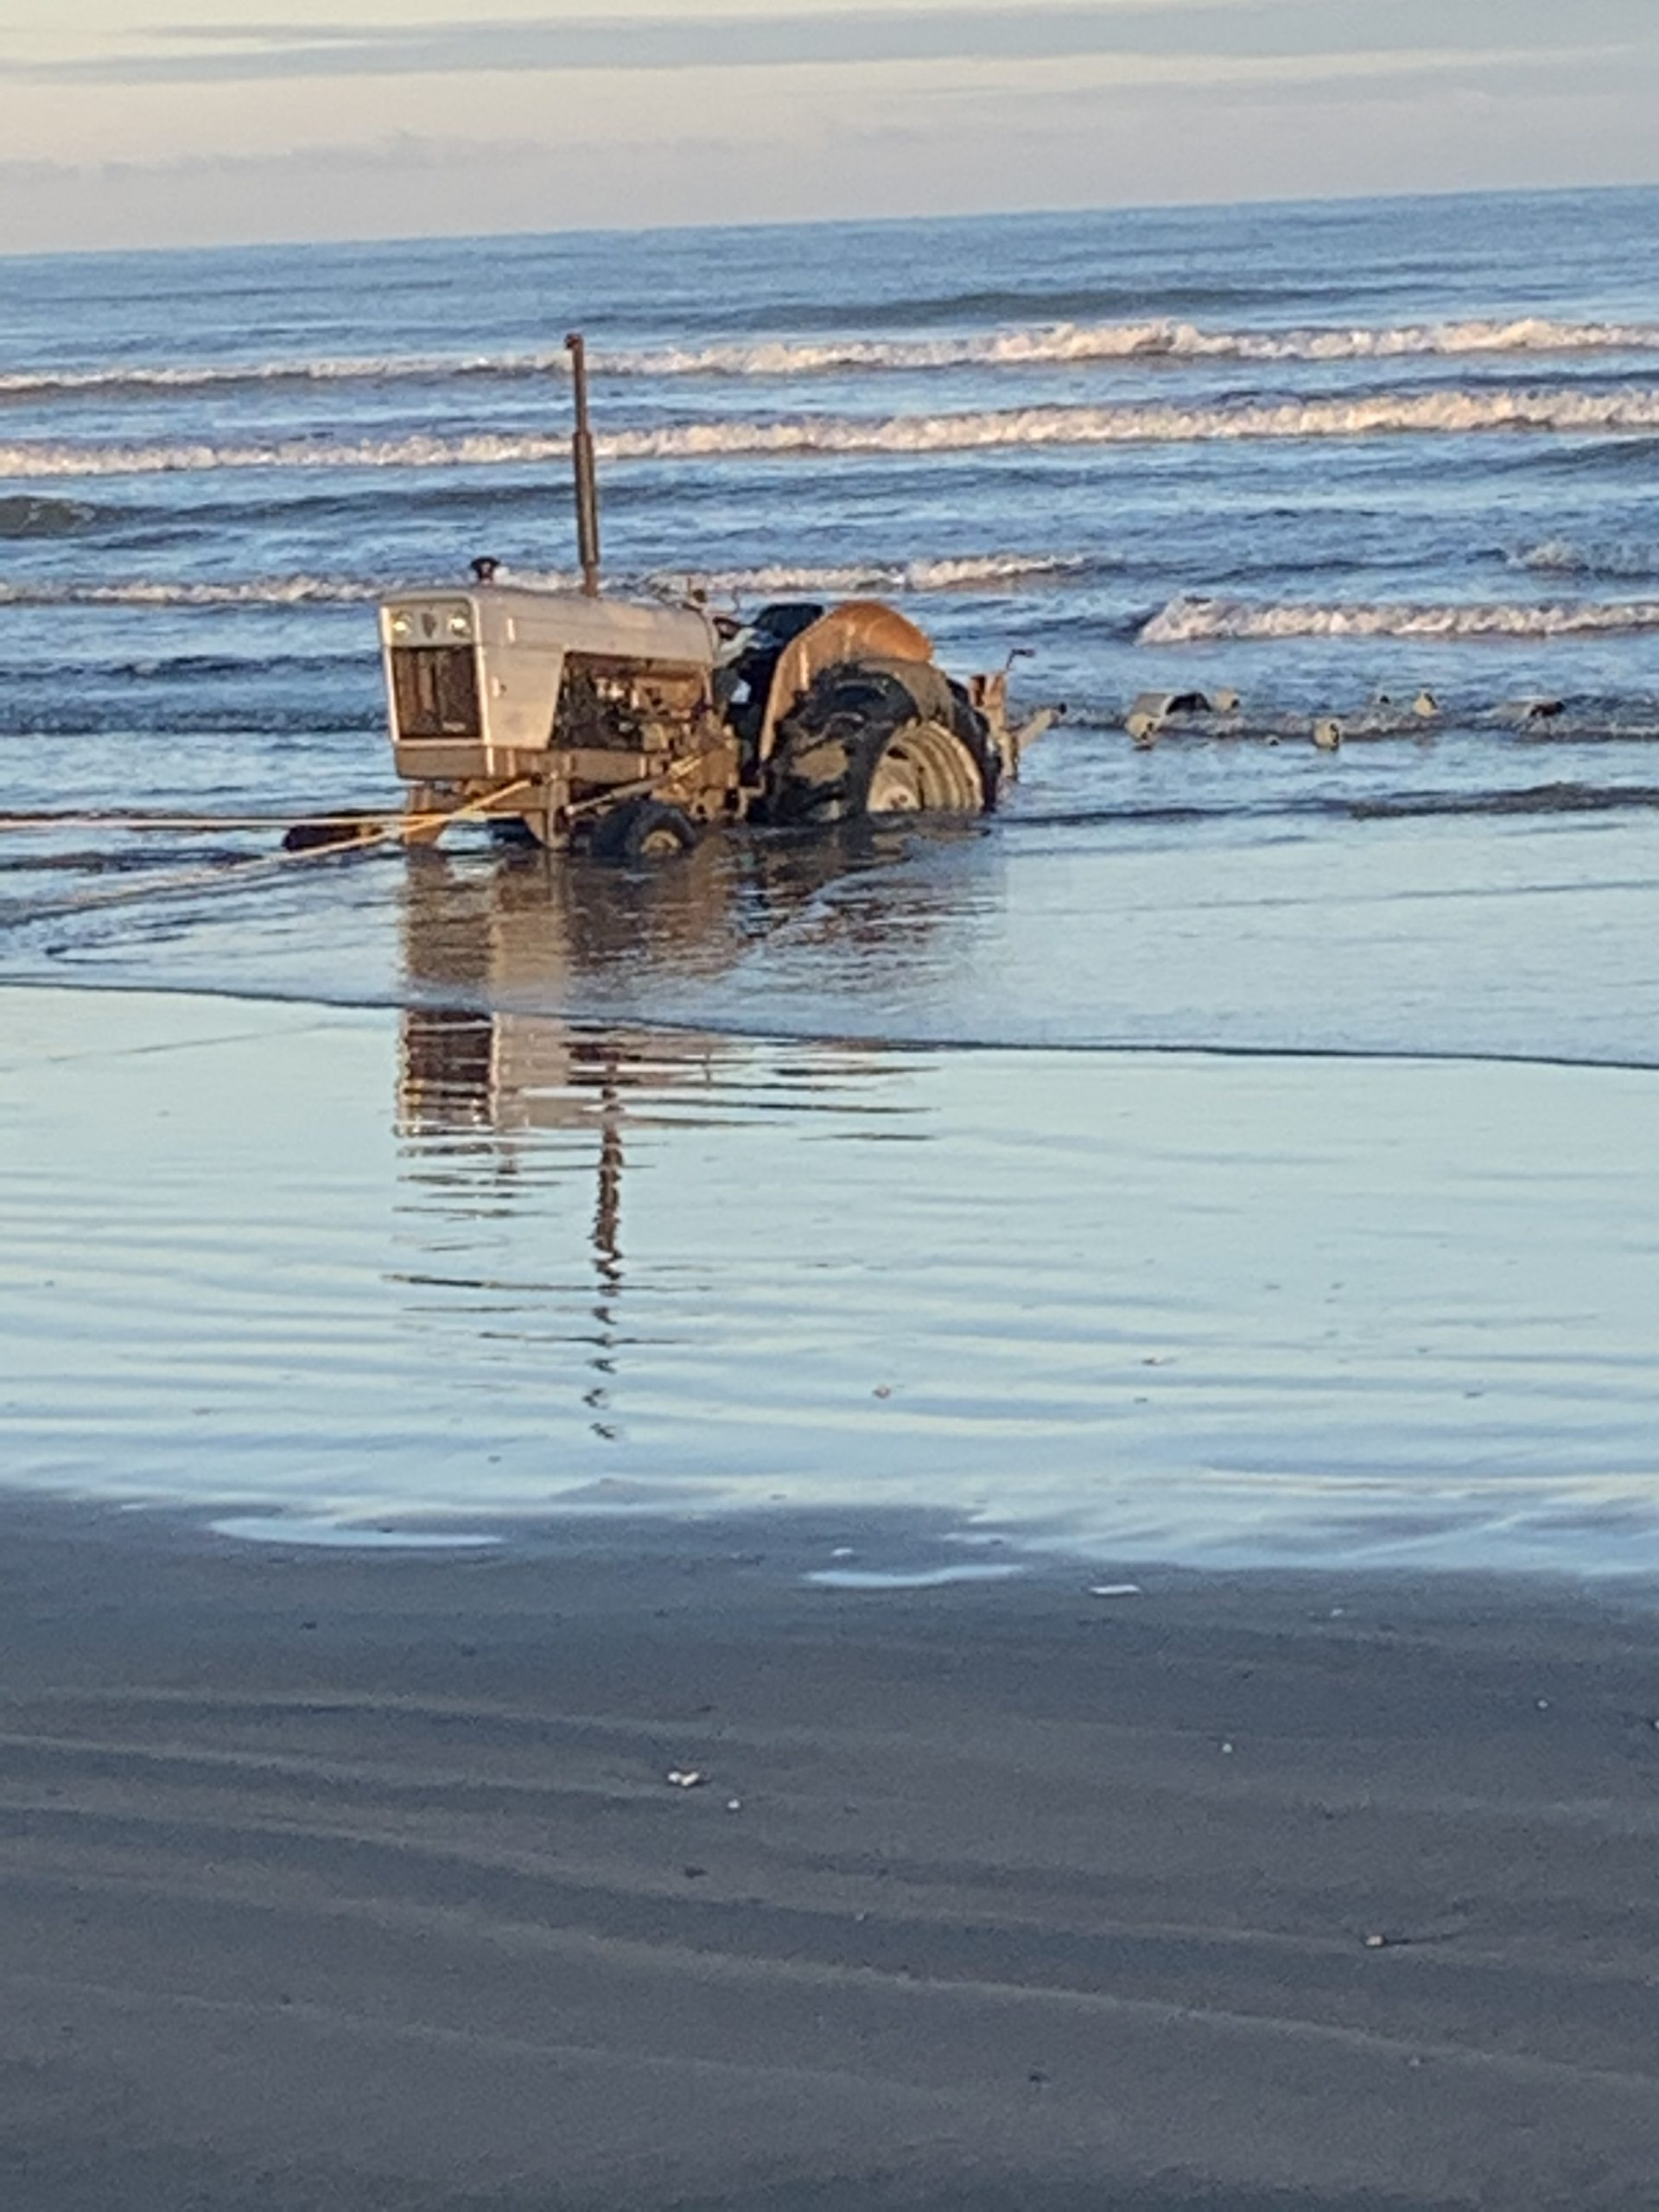 A tractor stuck in the sand and sea.